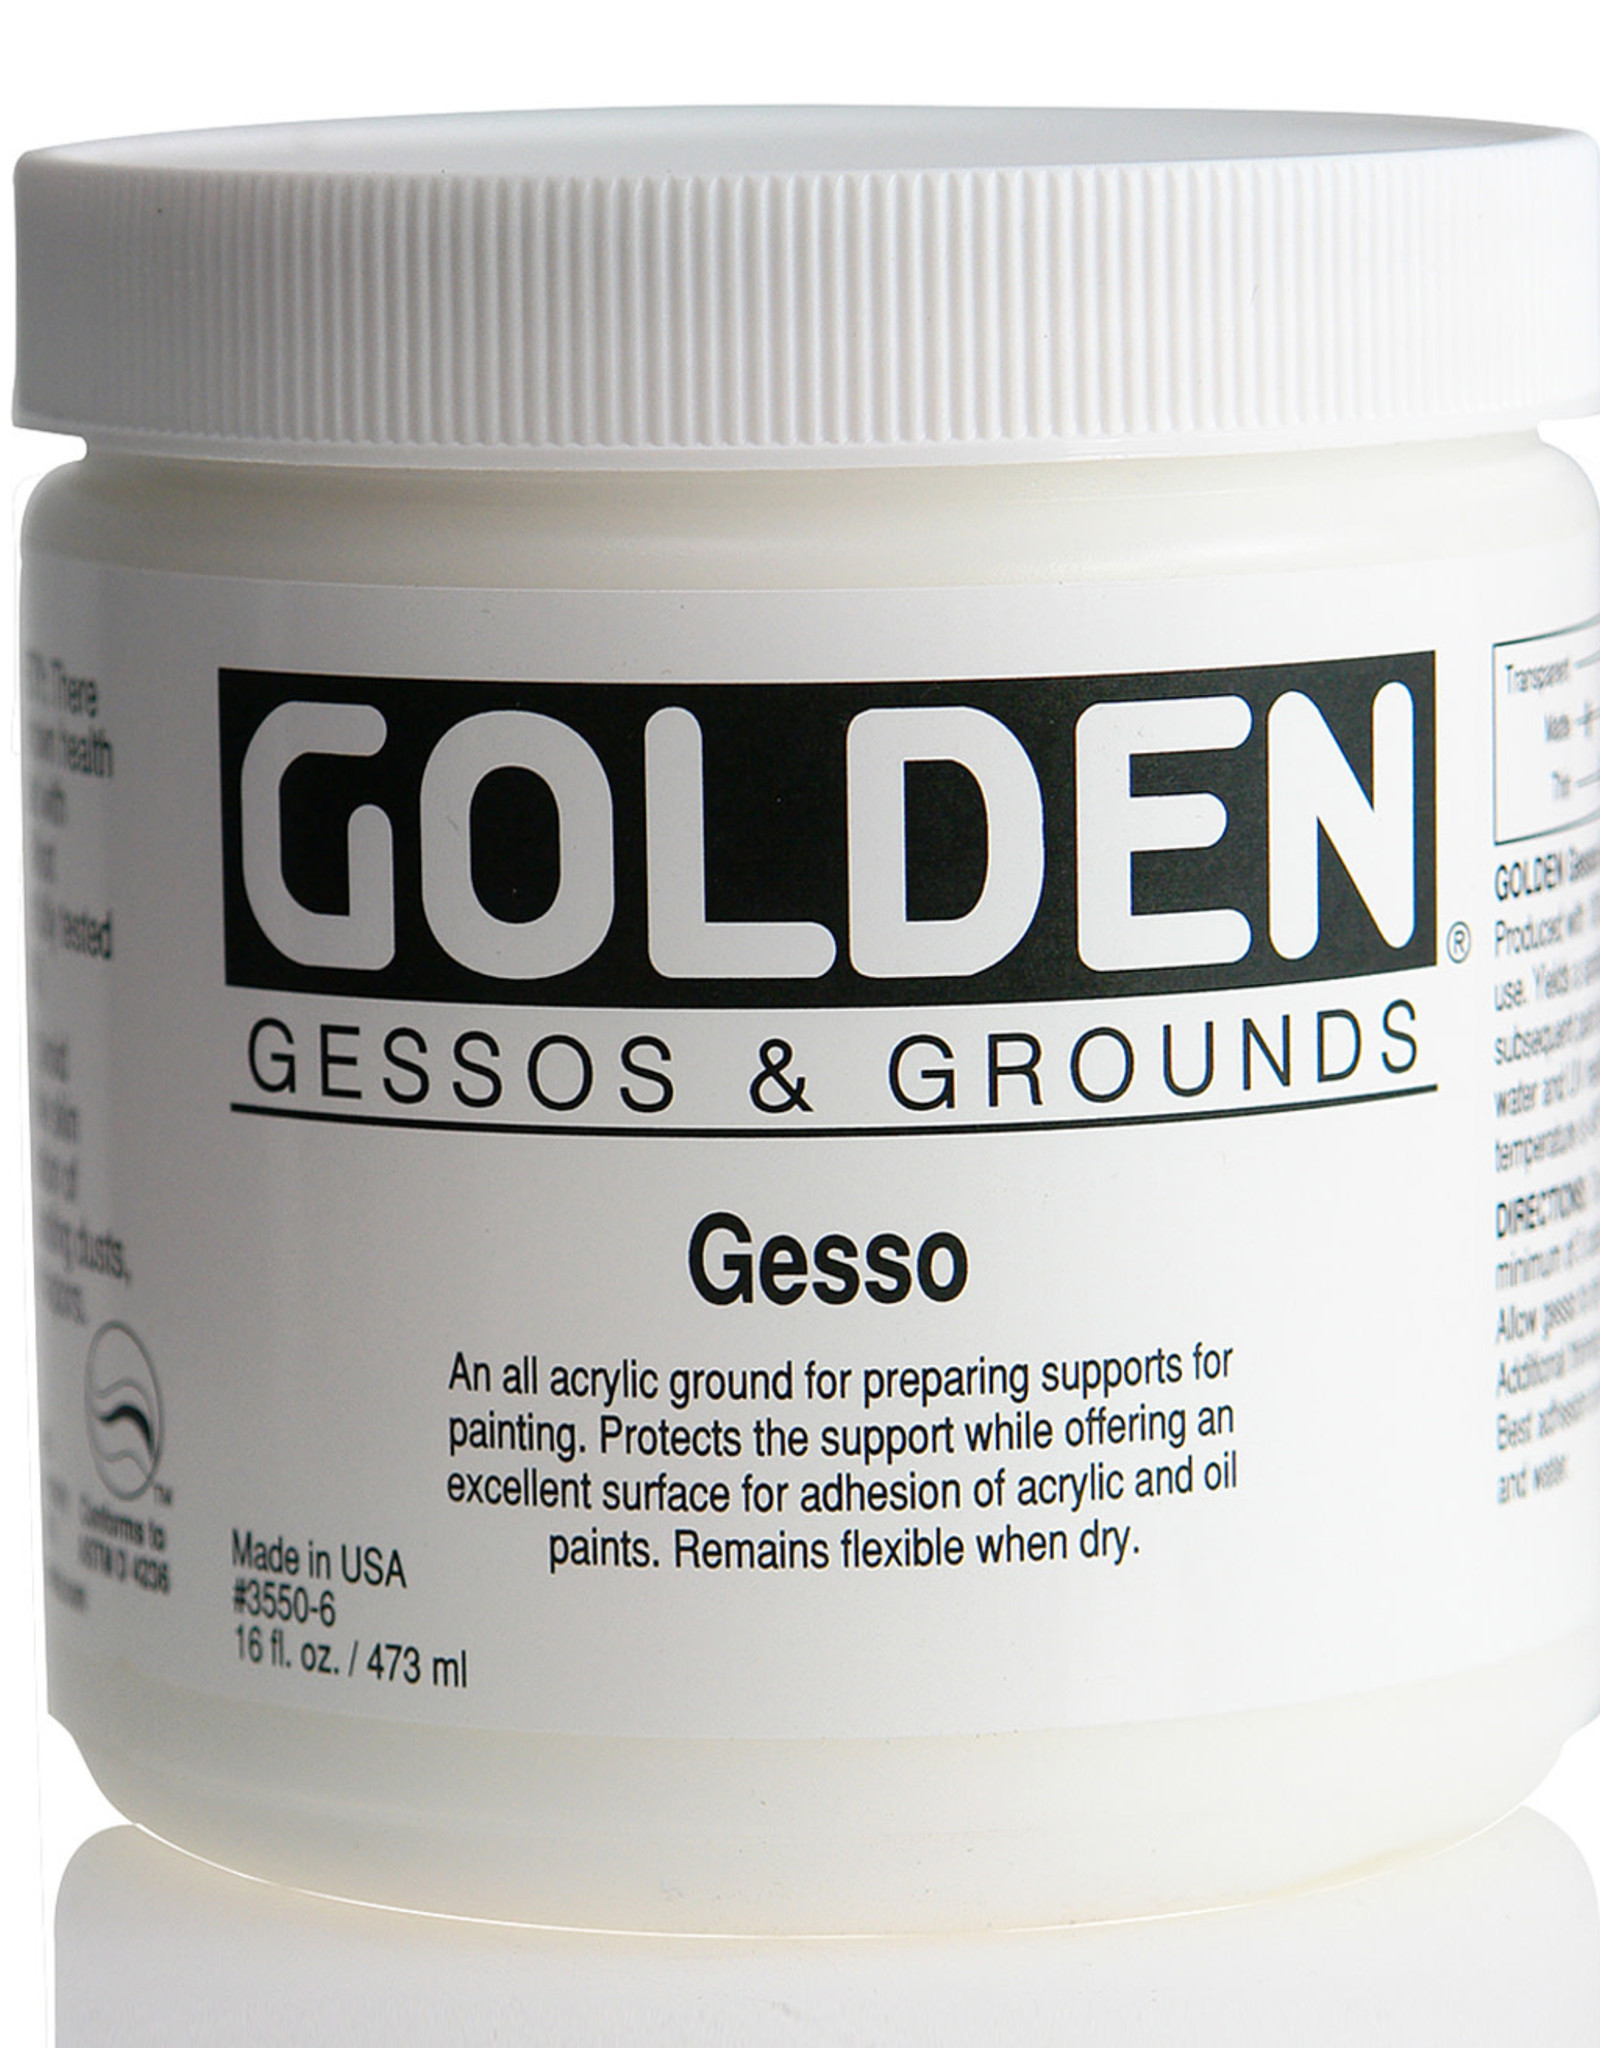 Golden, Gesso Ground, 16 Fl Oz. Jar